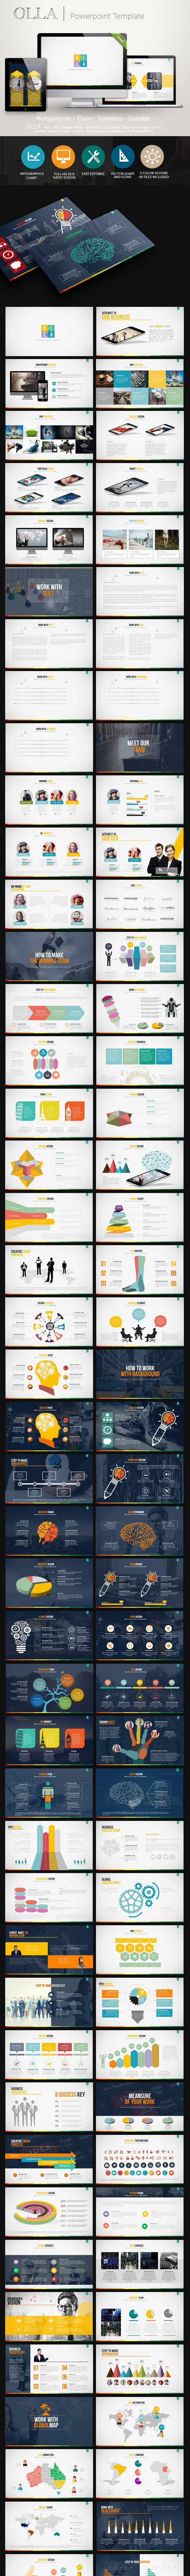 Olla PowerPoint Presentation Template - Business PowerPoint Templates